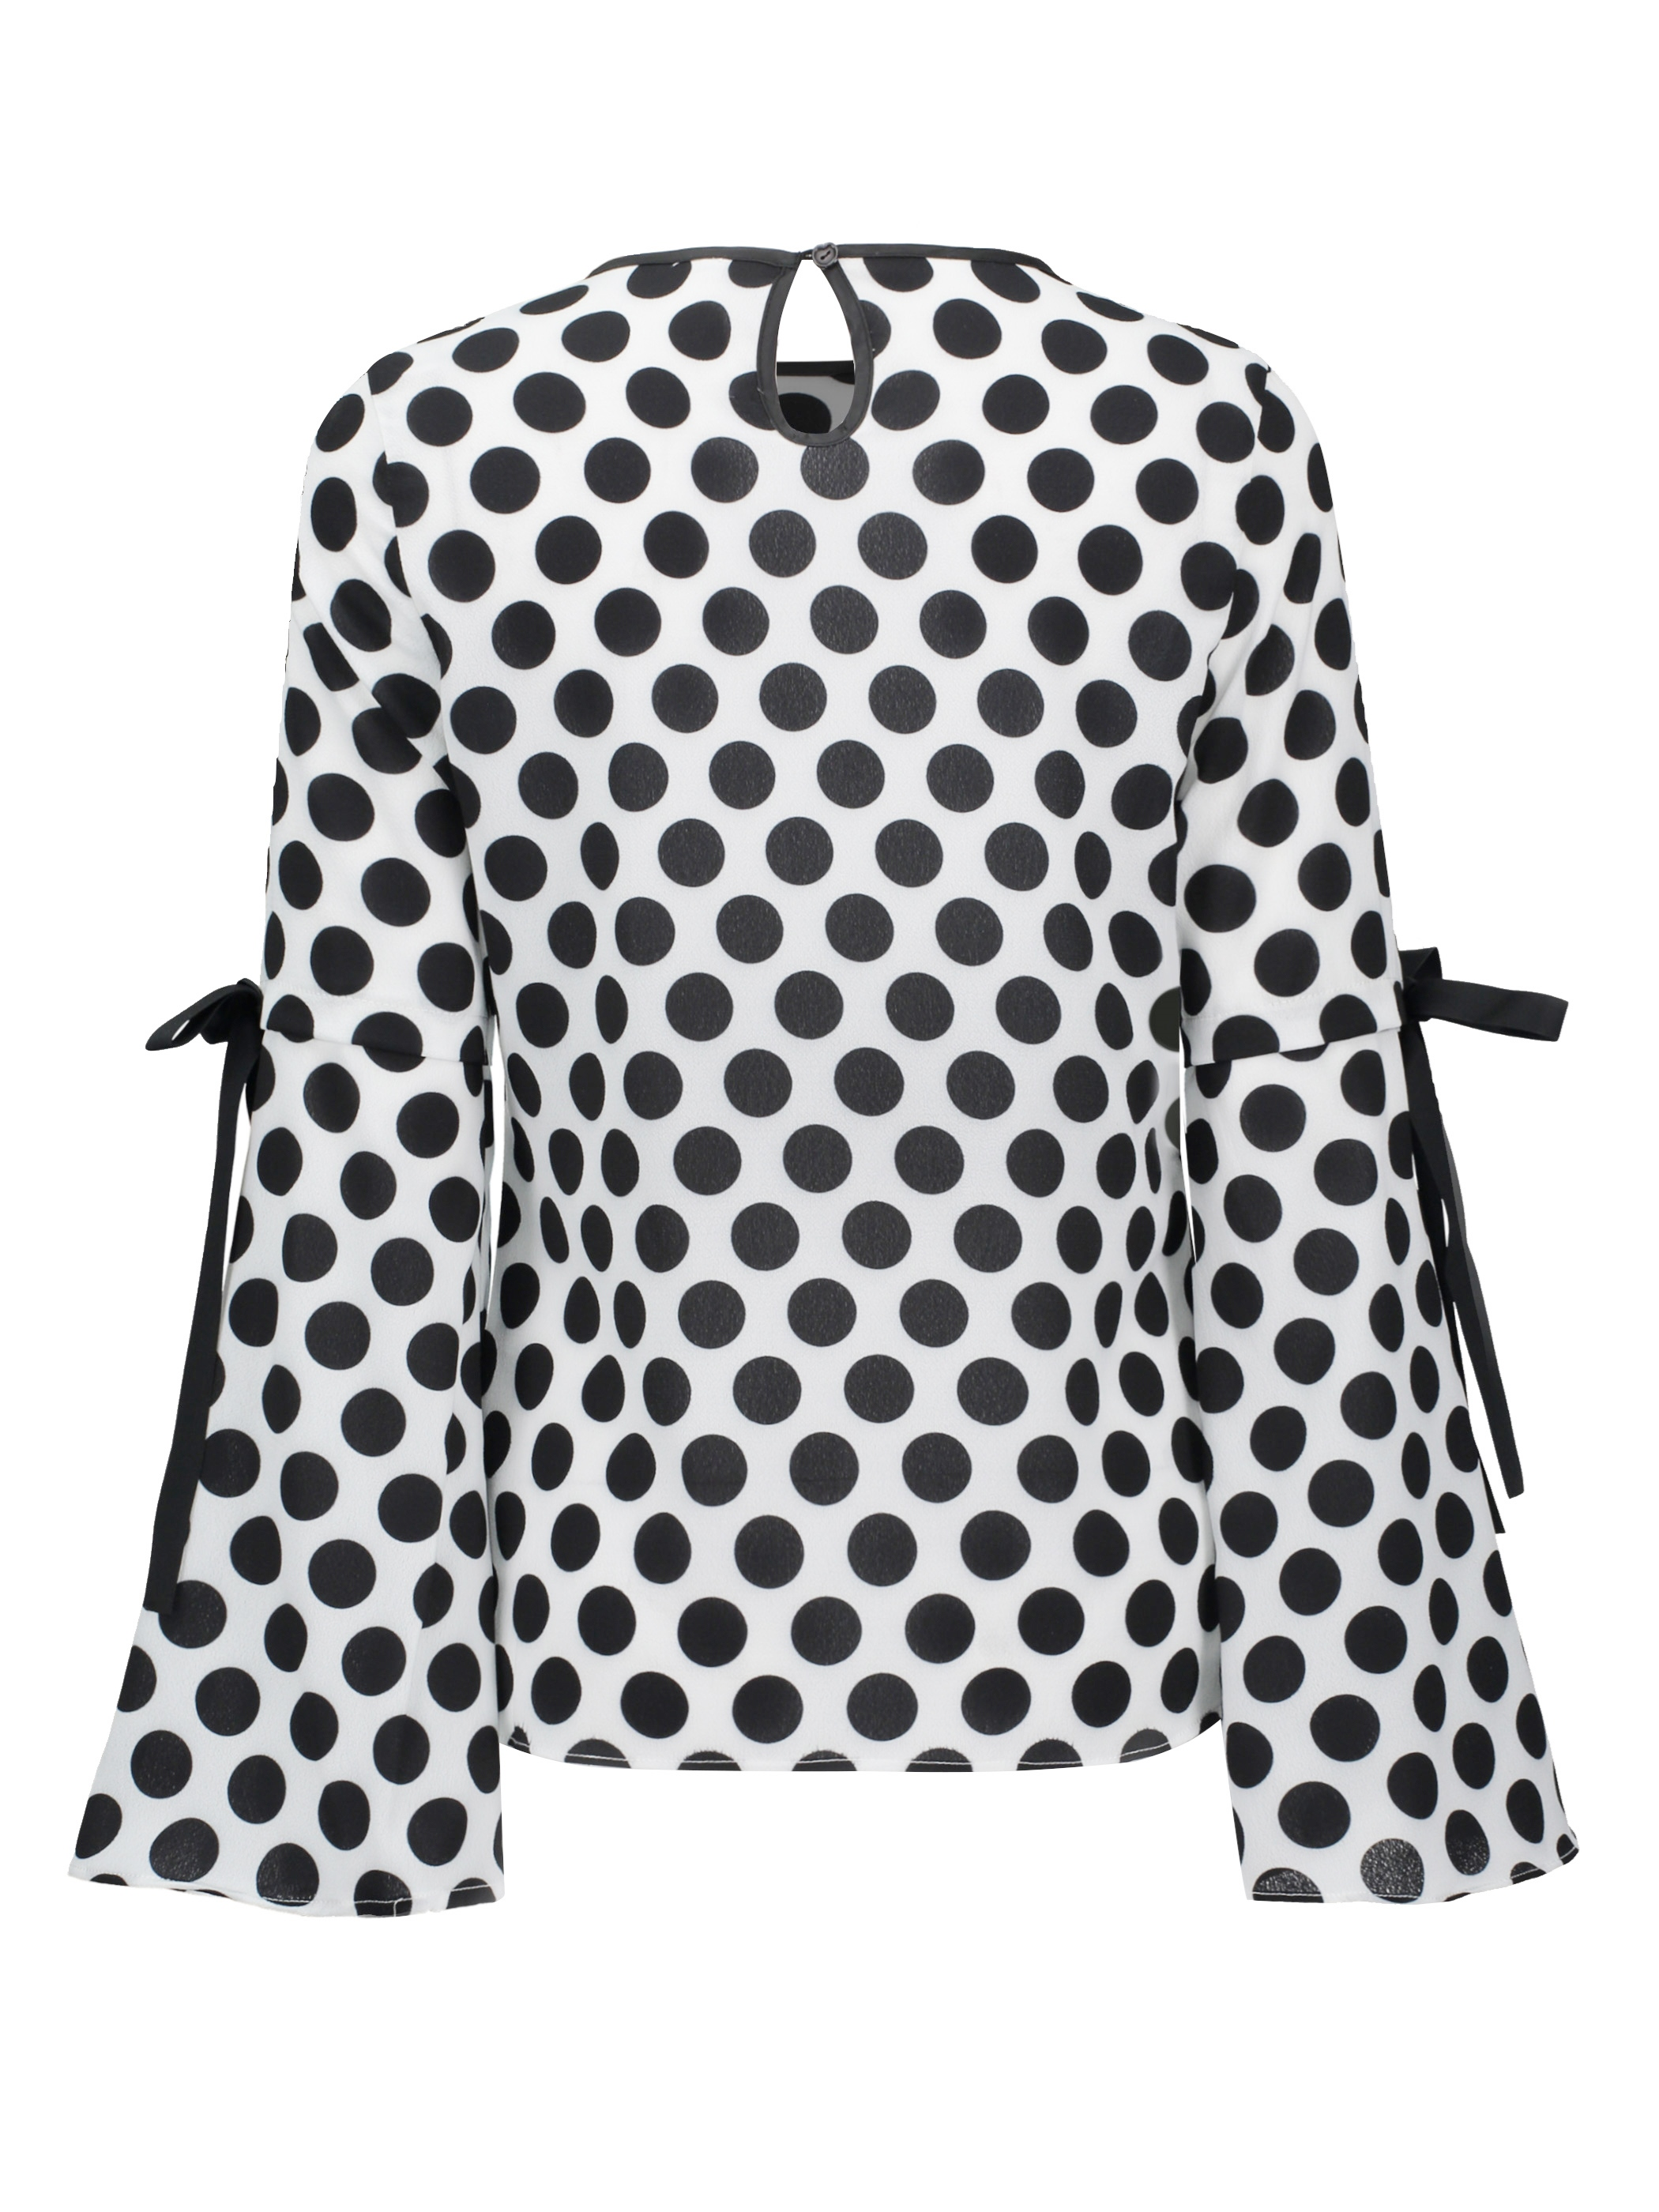 Ericdress Slim Polka Dots Flare Sleeve Womens Top